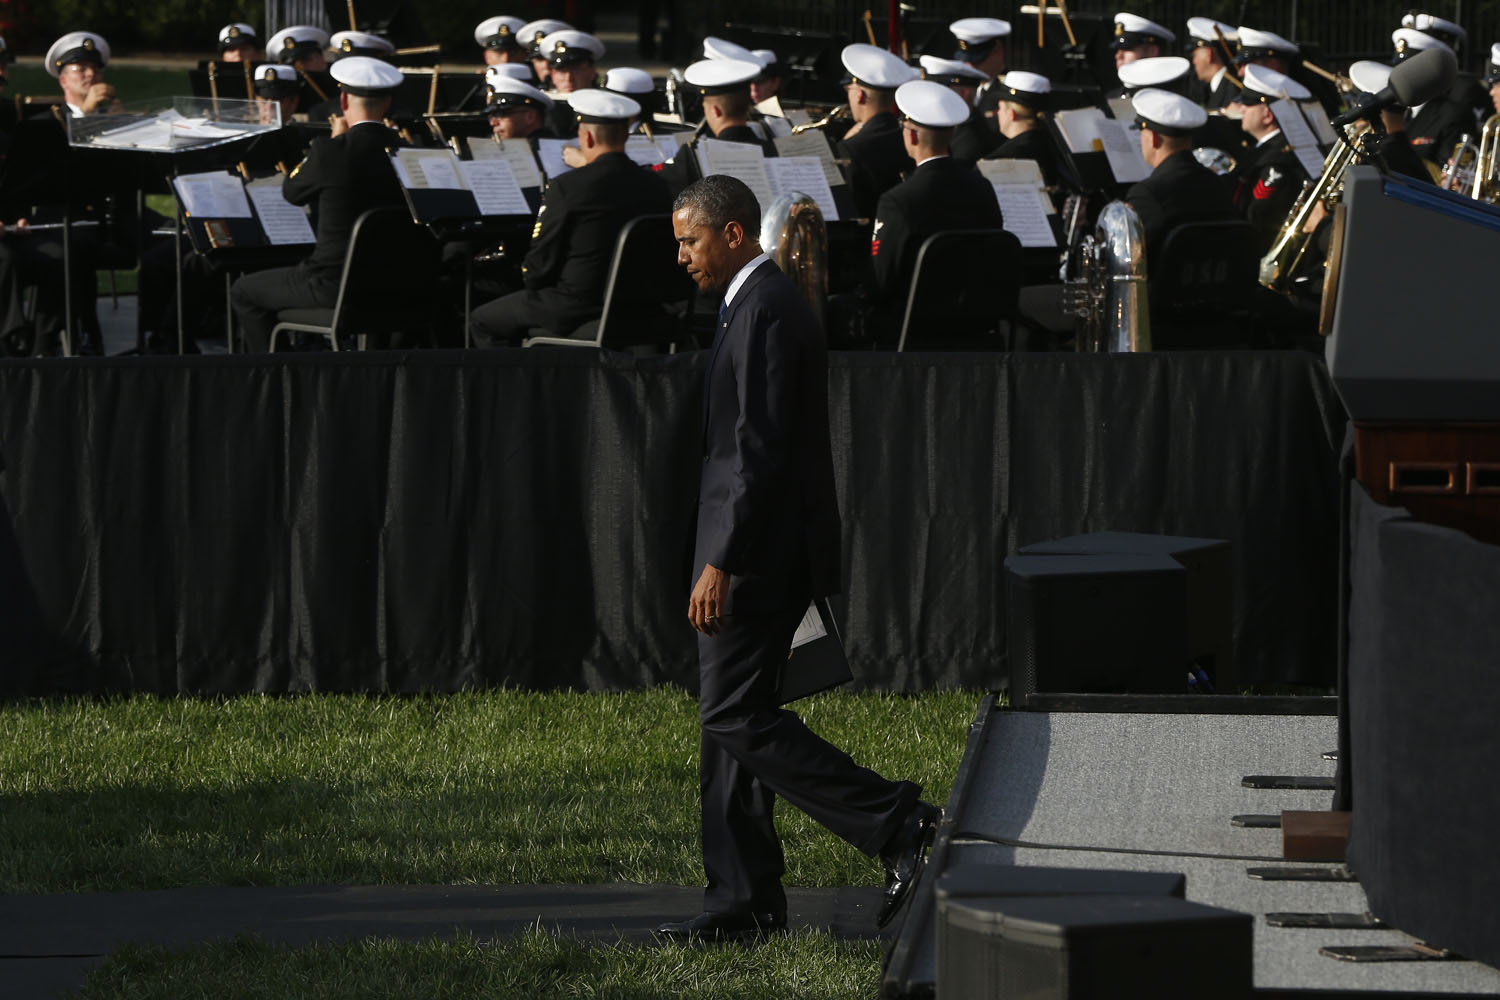 Sept. 22, 2013. President Barack Obama leaves the stage after he spoke at a memorial service for the victims of the Washington Navy Yard shooting at Marine Barracks in Washington.